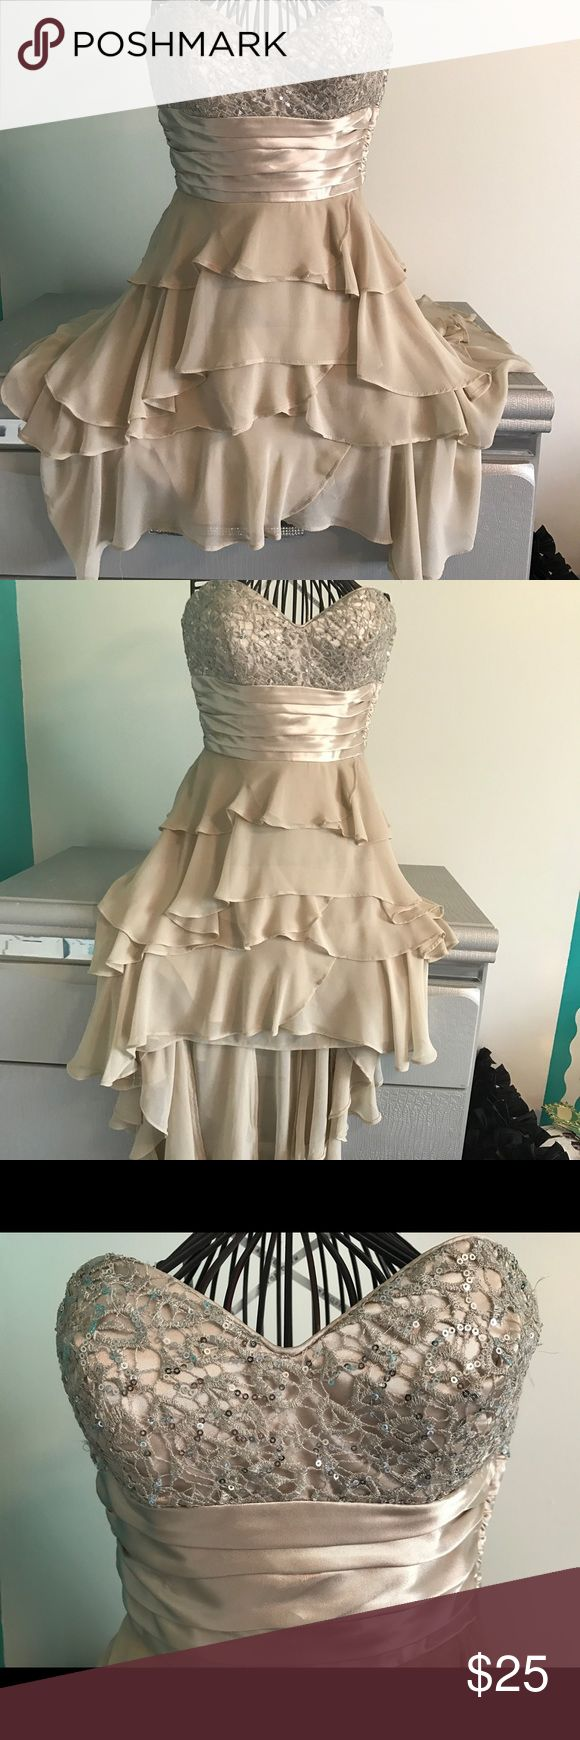 Masquerade high low dress Beautiful champagne color no stains or rips great for prom homecoming weddings quinces... Etc. masquerade Dresses High Low